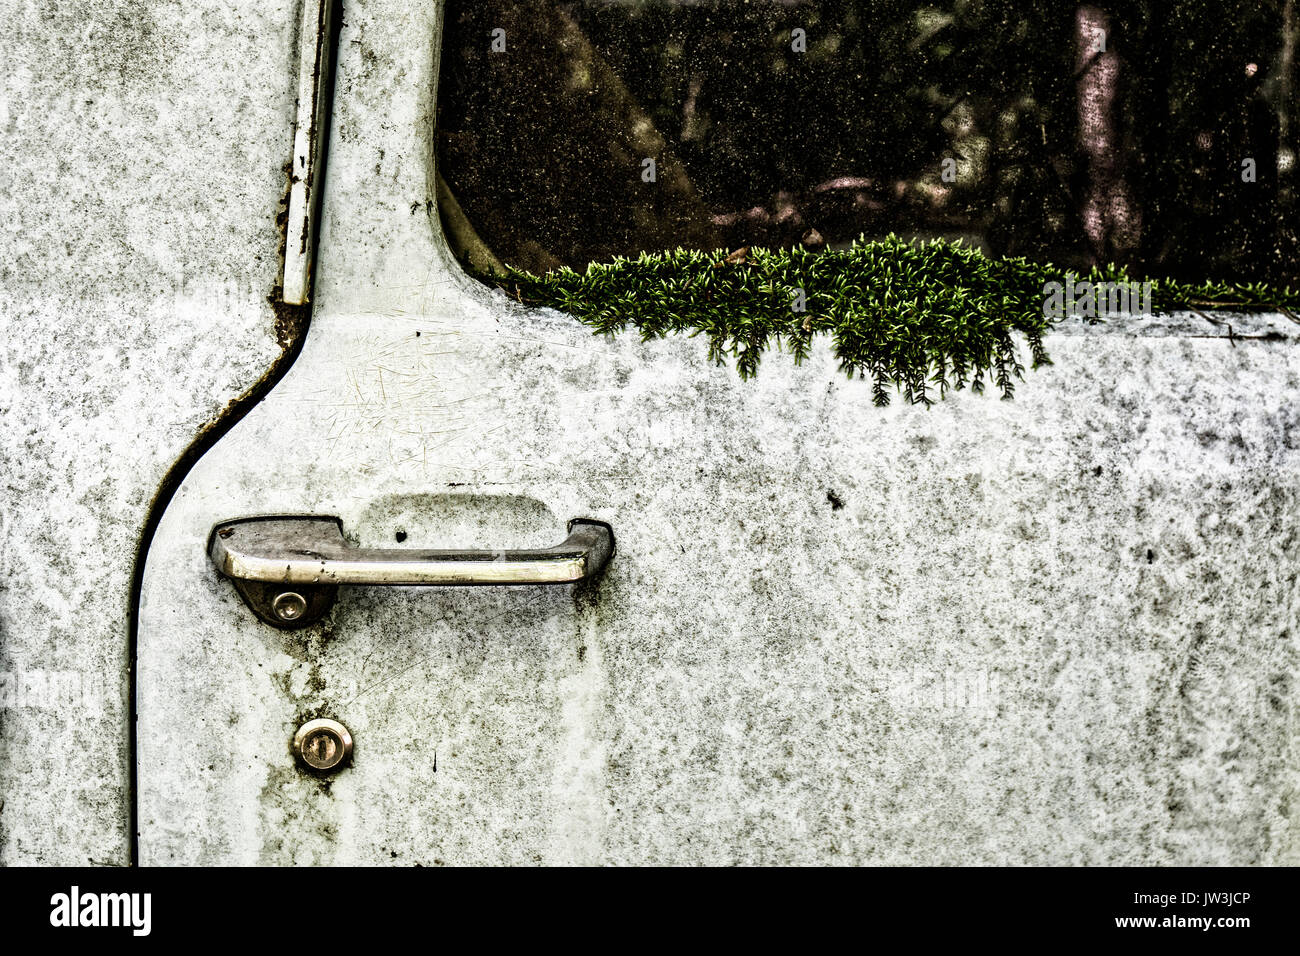 Abandoned car overgrown with moss - Stock Image